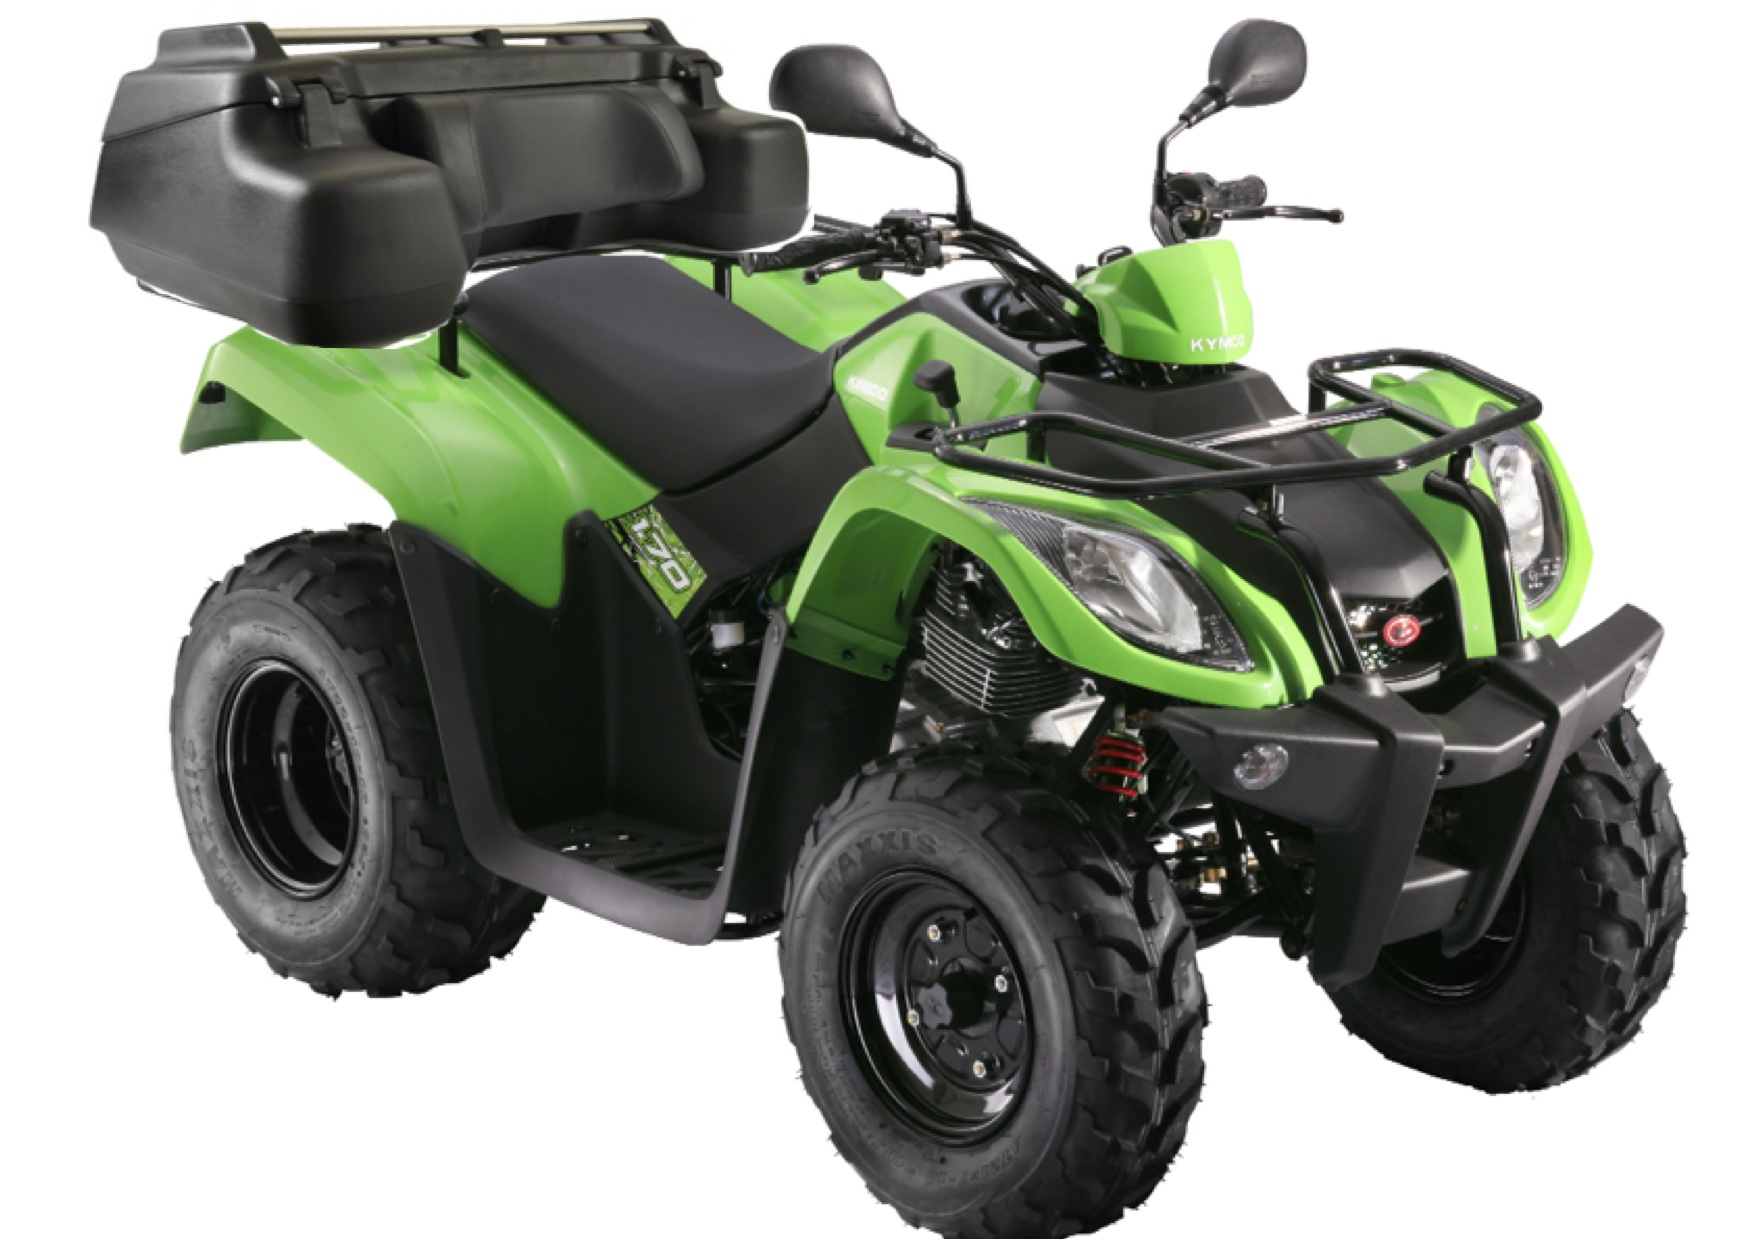 kymco mxu 150 pics specs and list of seriess by year. Black Bedroom Furniture Sets. Home Design Ideas